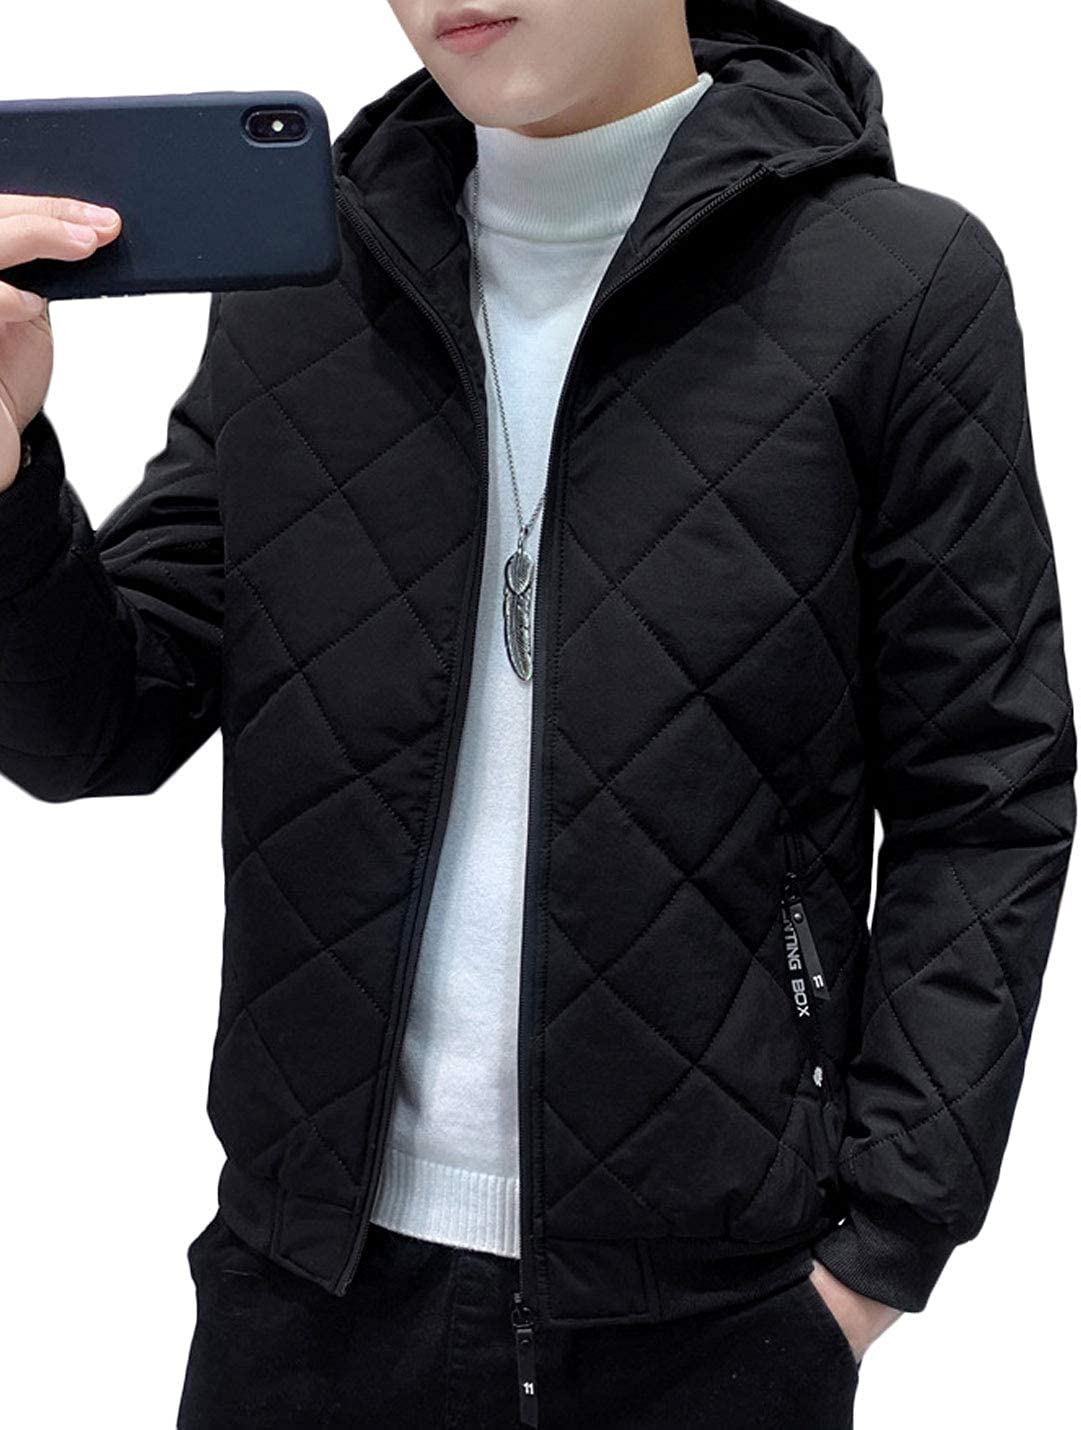 Jenkoon Men's Thermal Faux Fur Lined Quilted Puffer Hooded Jacket